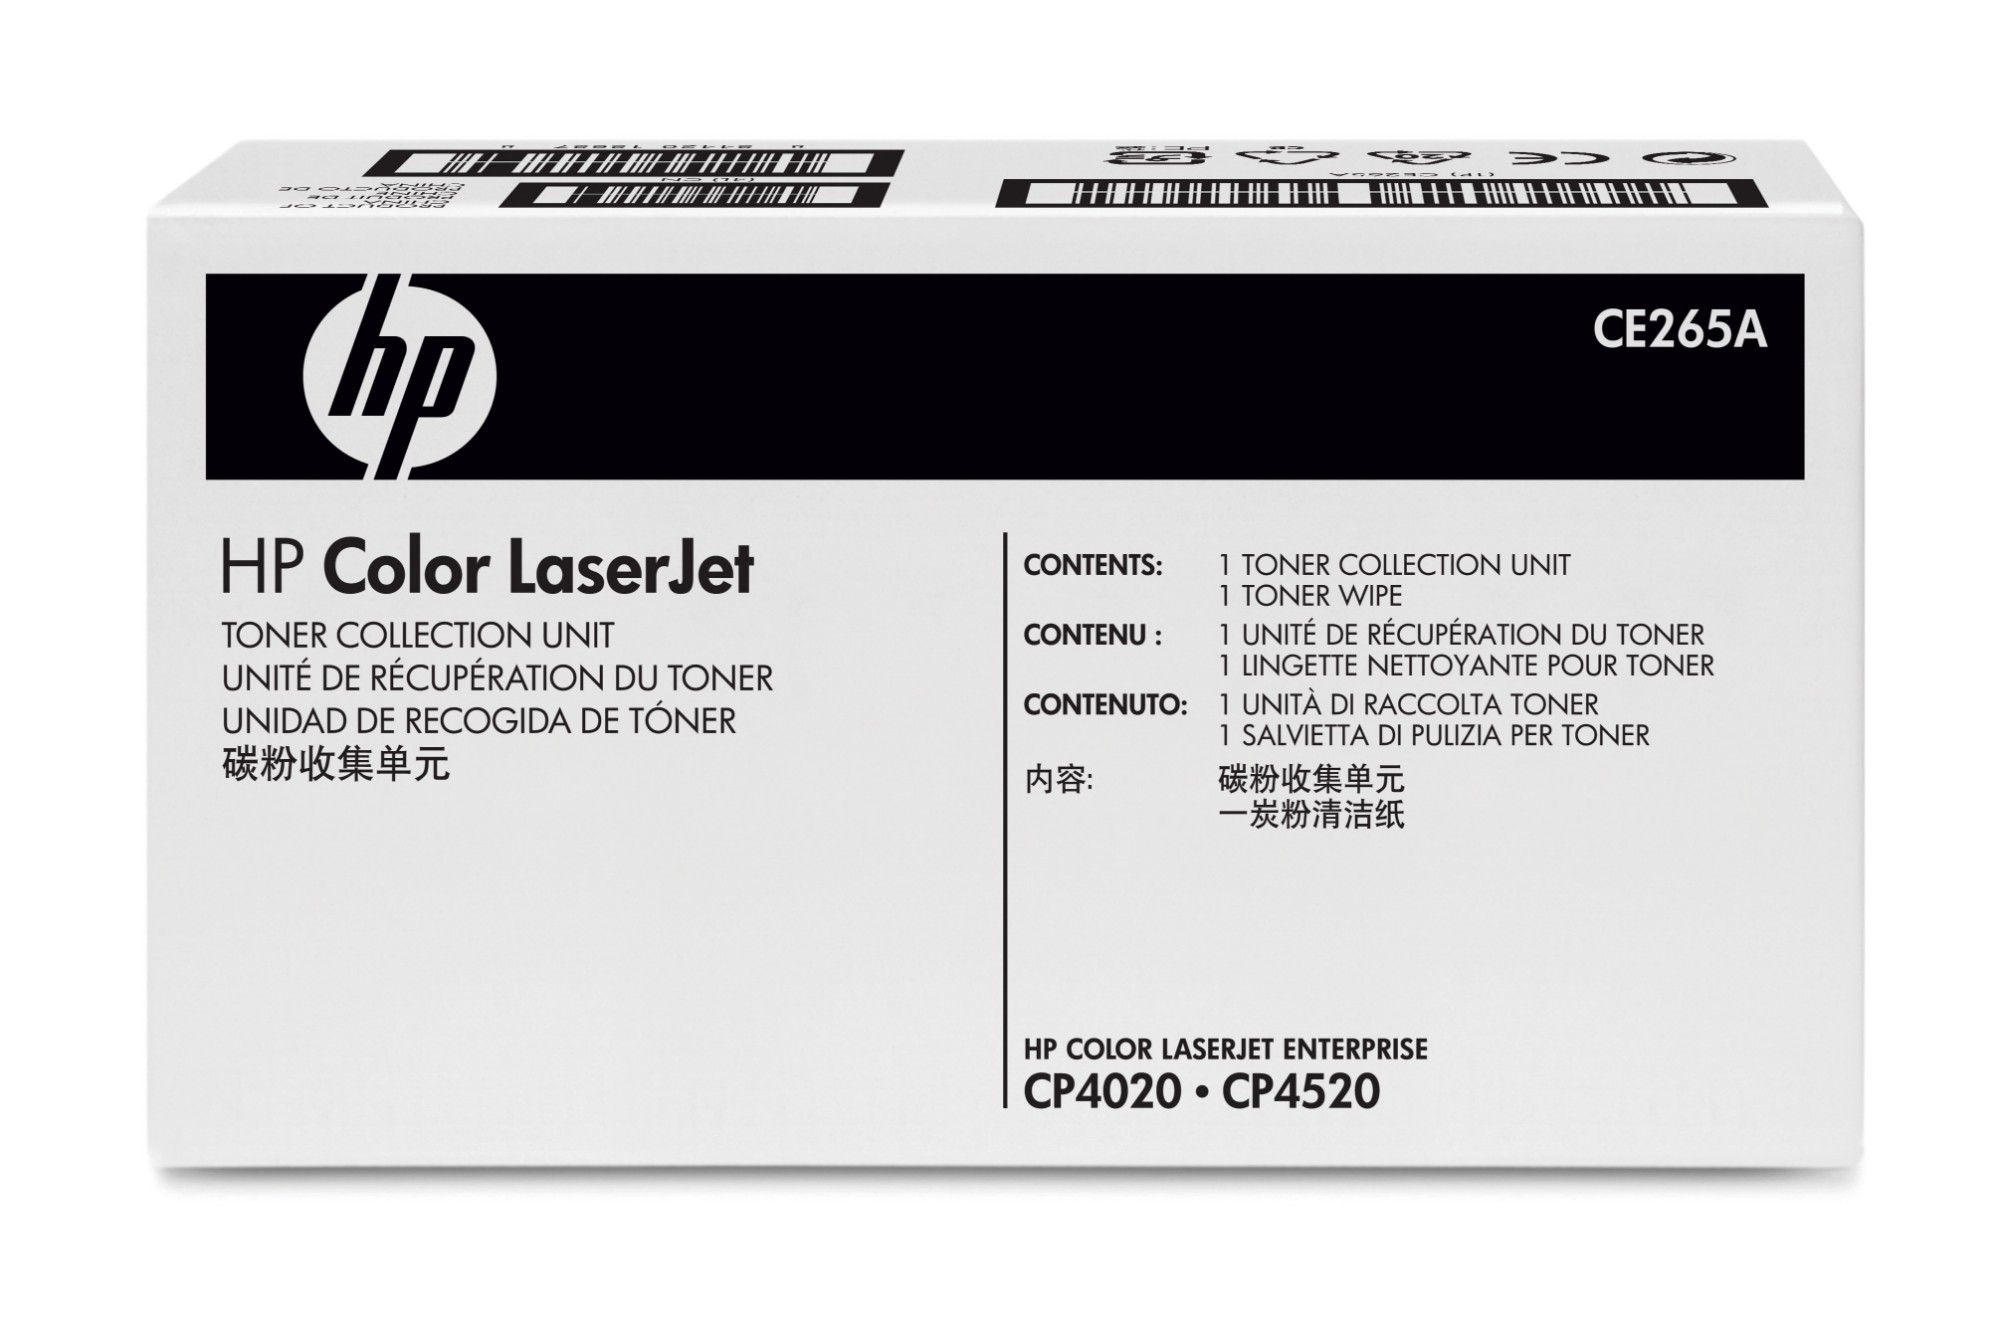 HP 648A toner collector 36000 pagina's